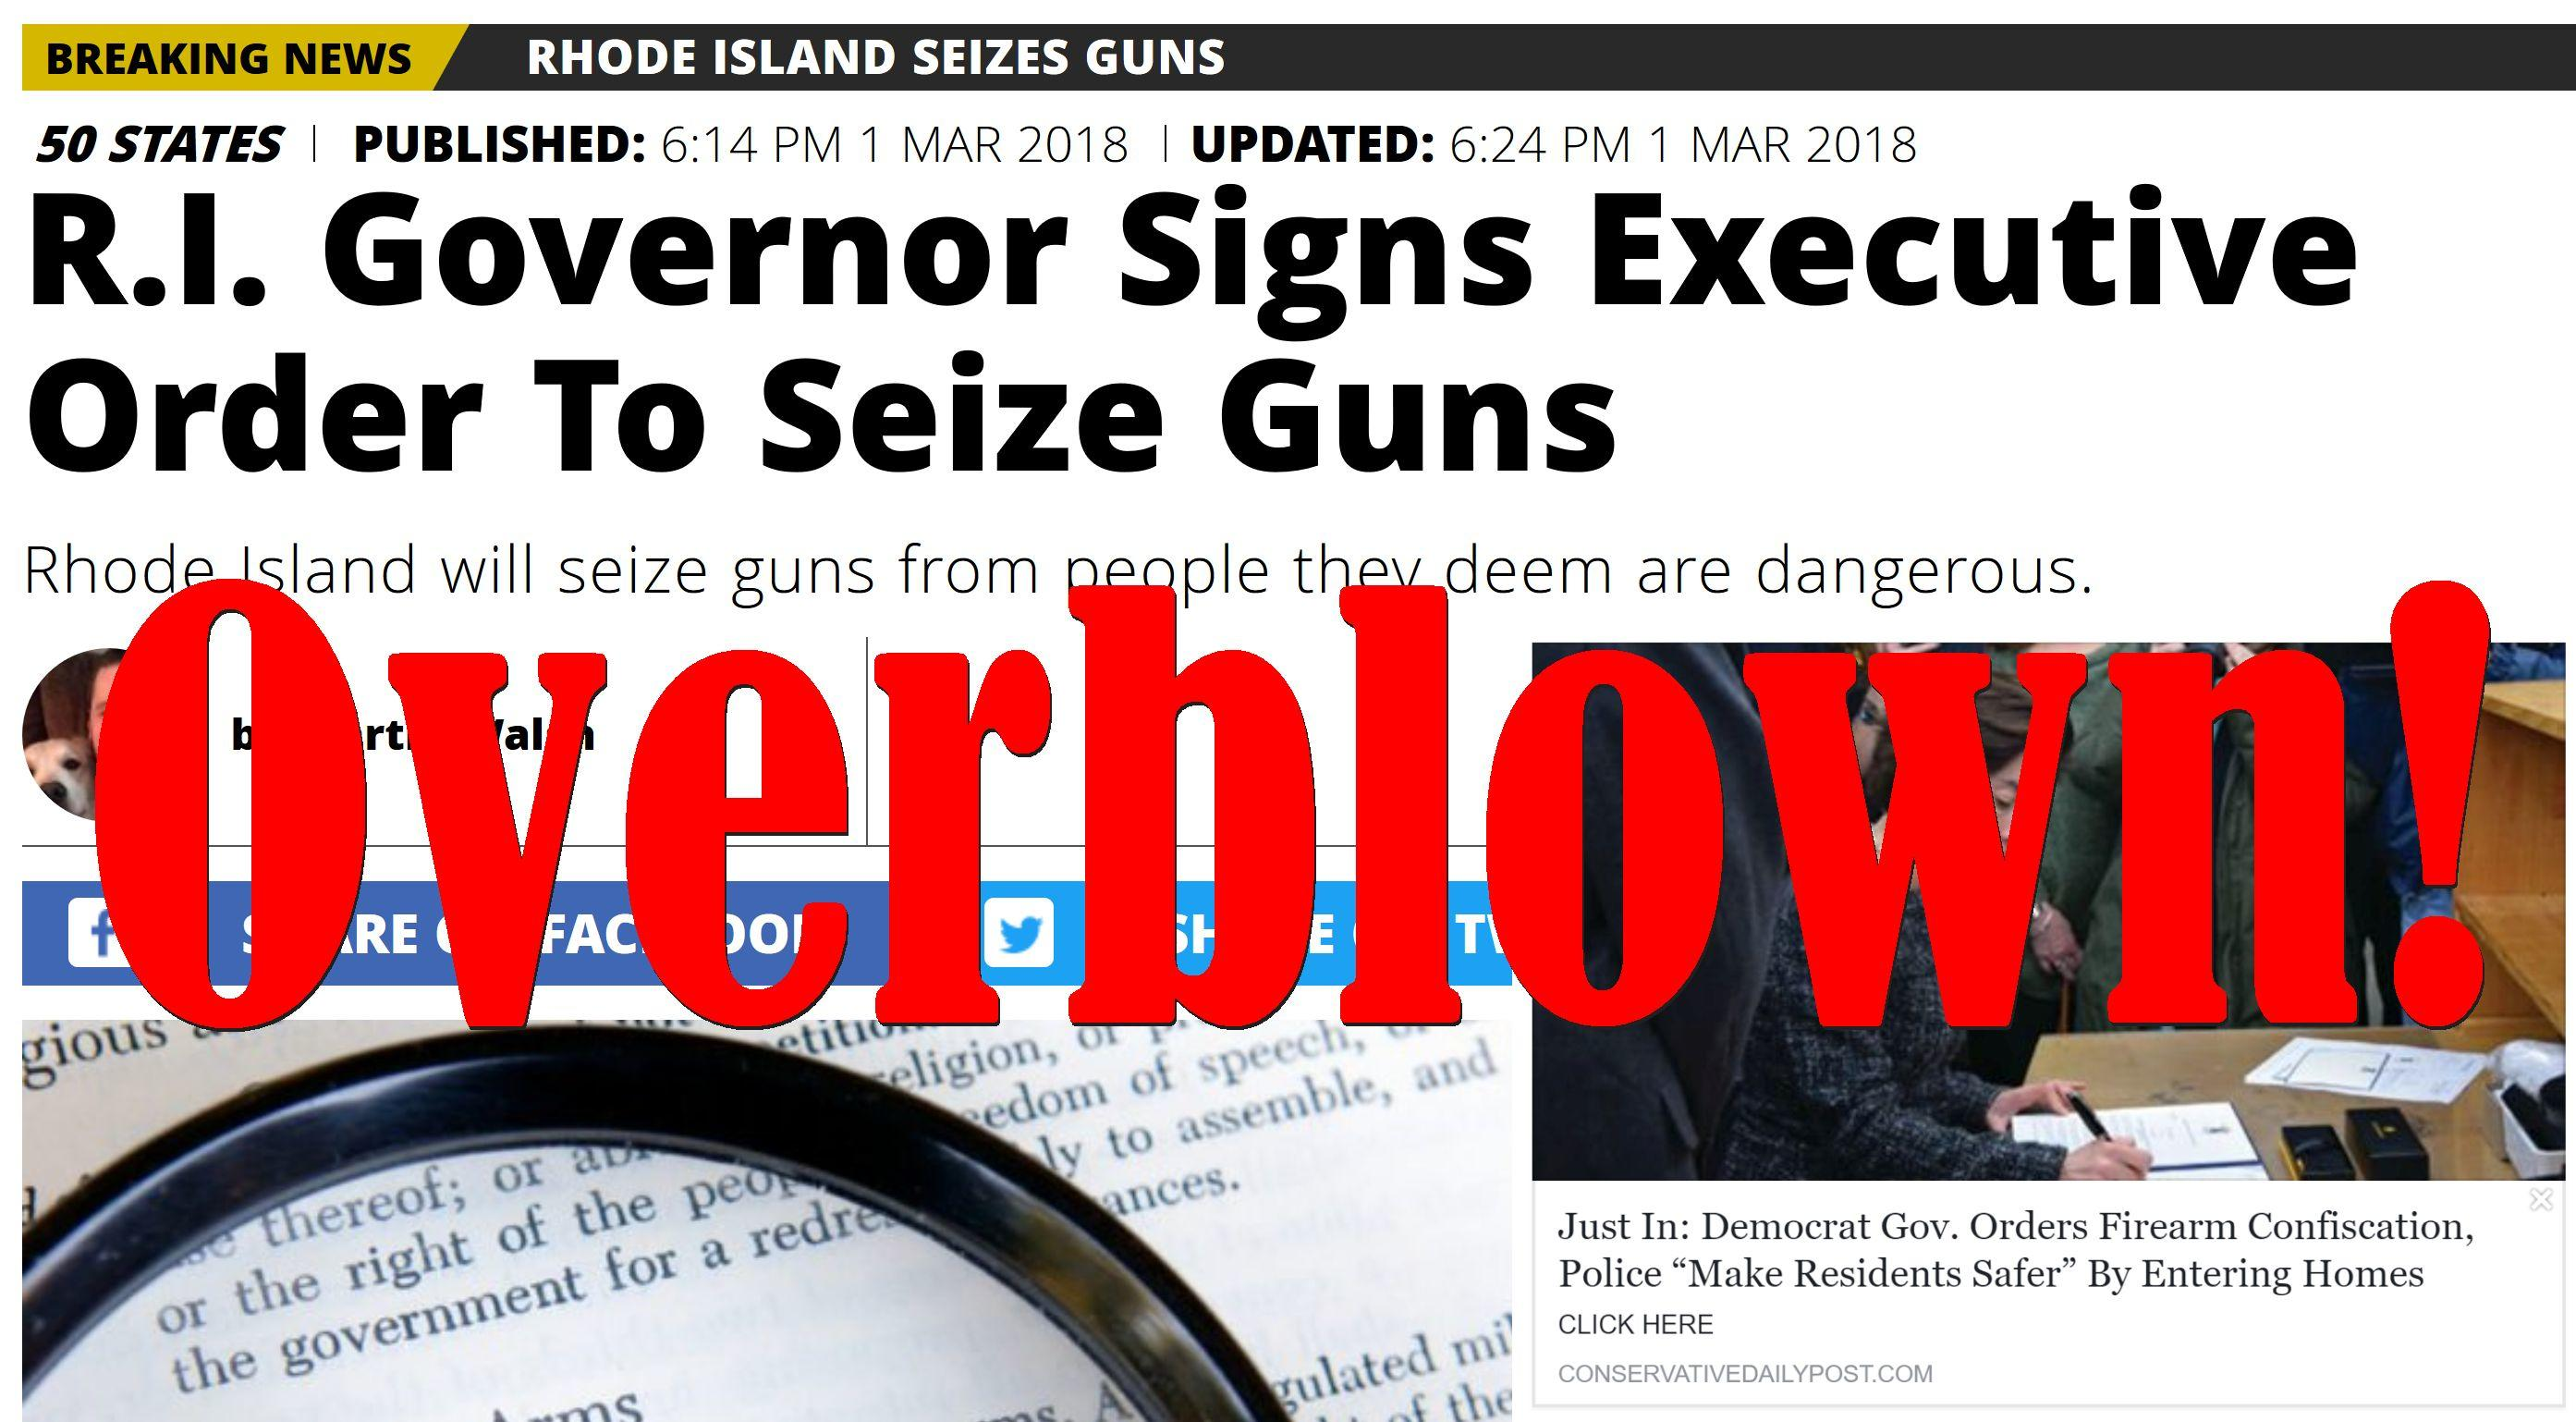 Fake News: Democrat Governor Did NOT Order Firearm Confiscation